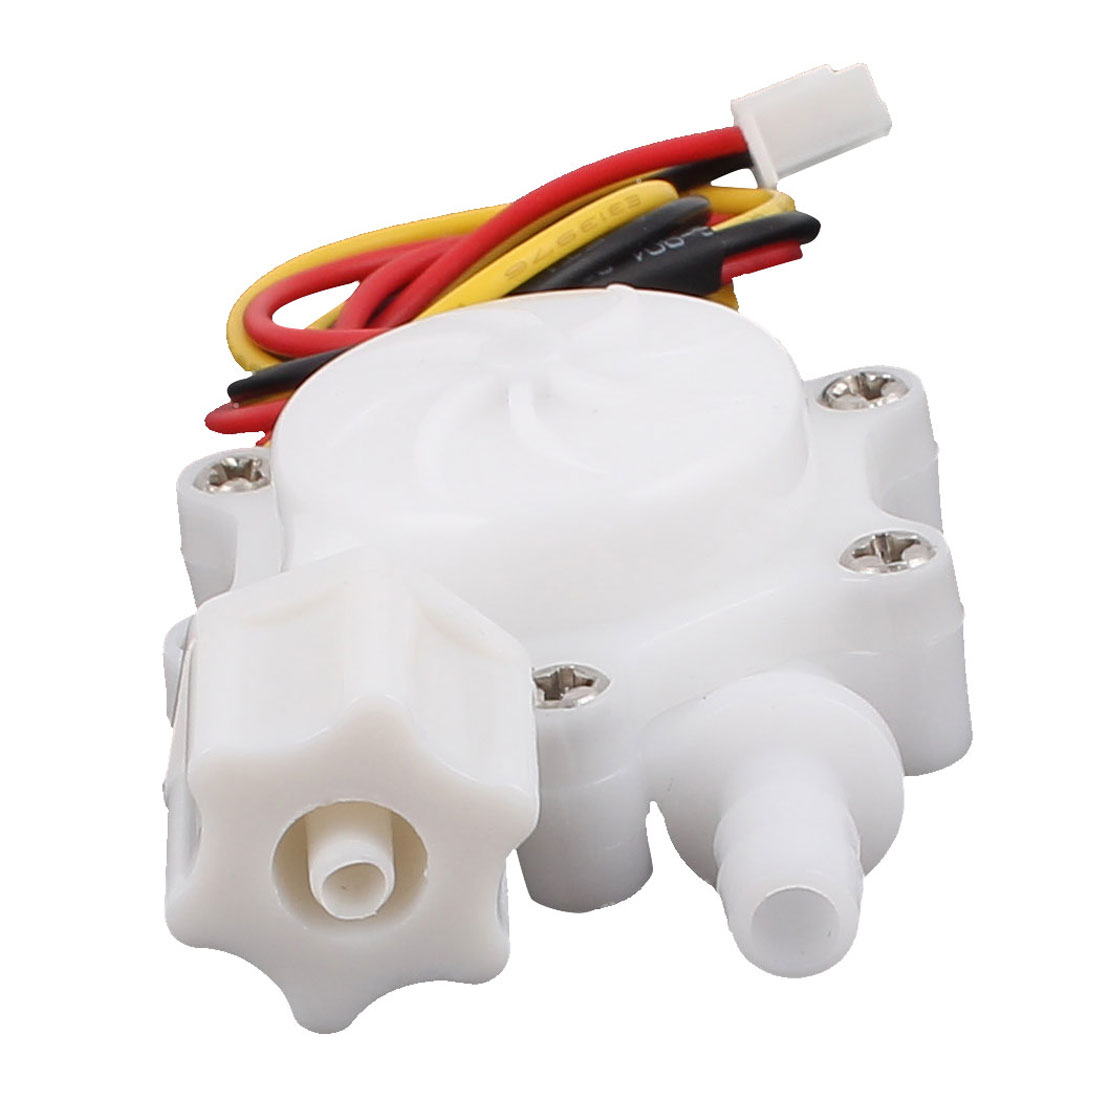 G1/4 Male Thread 6mm Outlet Outer Dia Water Flow Sensor 0.3-3.0L/min SEN-HW06FA